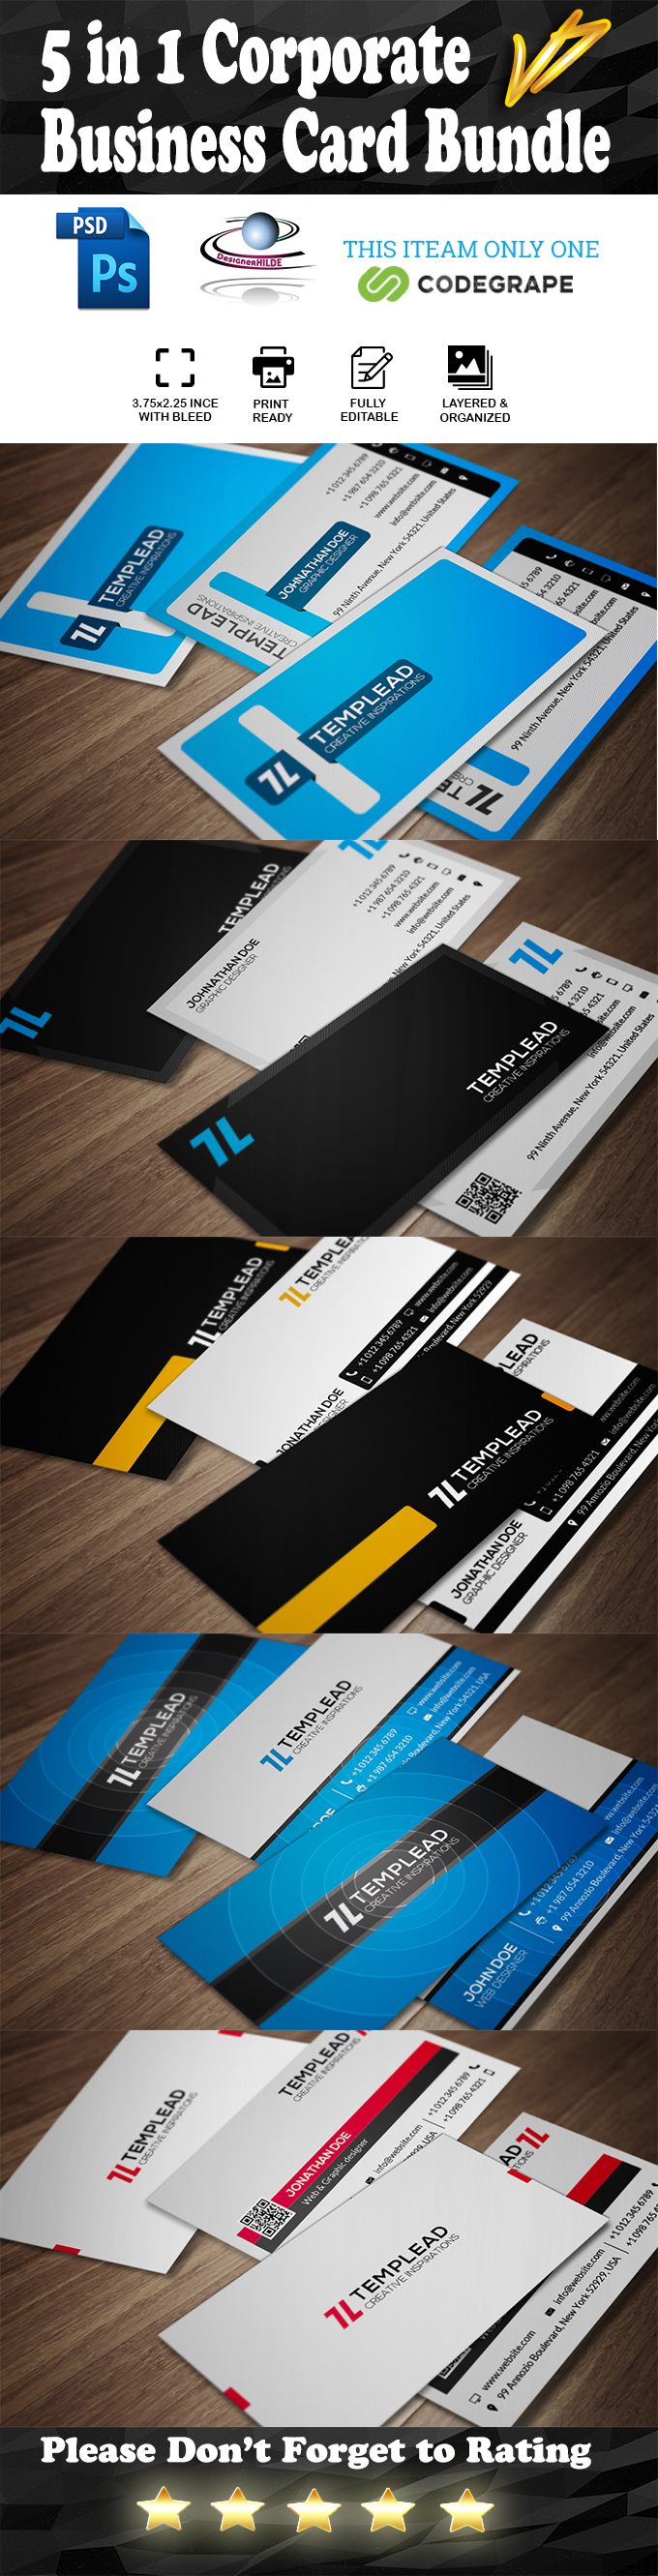 5 in 1 Corporate Business Card Bundle v7